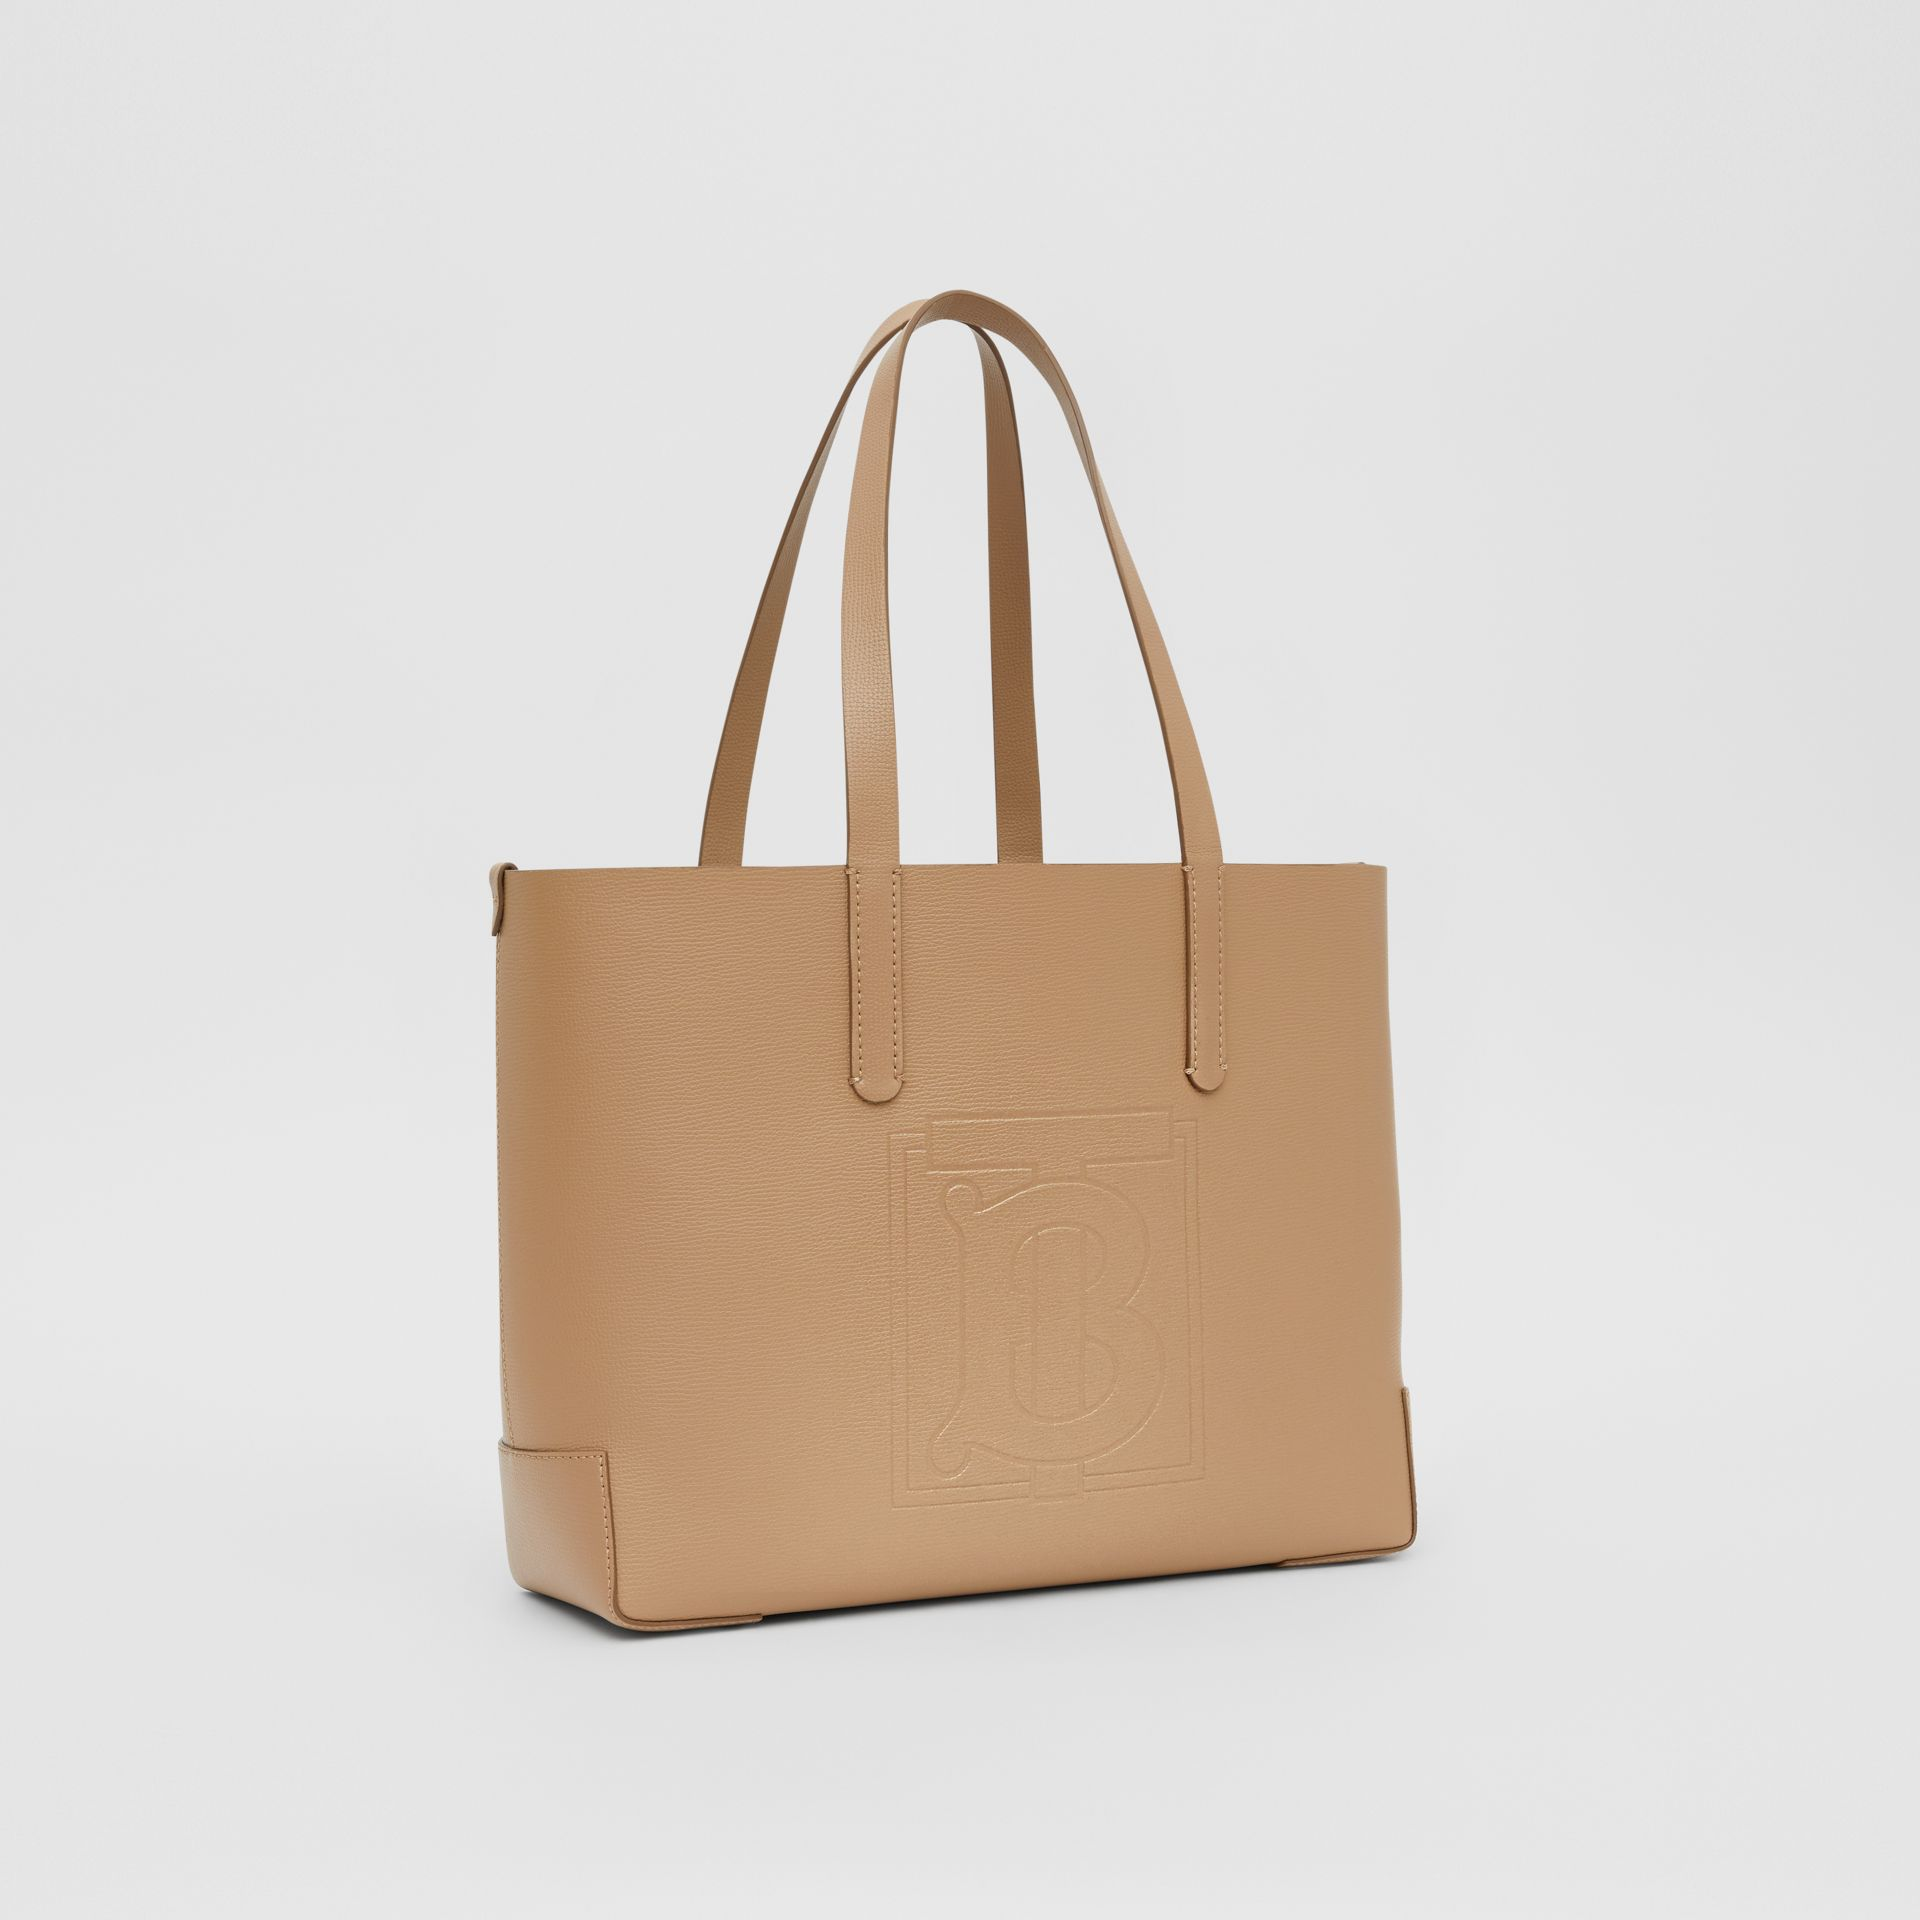 Embossed Monogram Motif Leather Tote in Camel - Women | Burberry Canada - gallery image 6